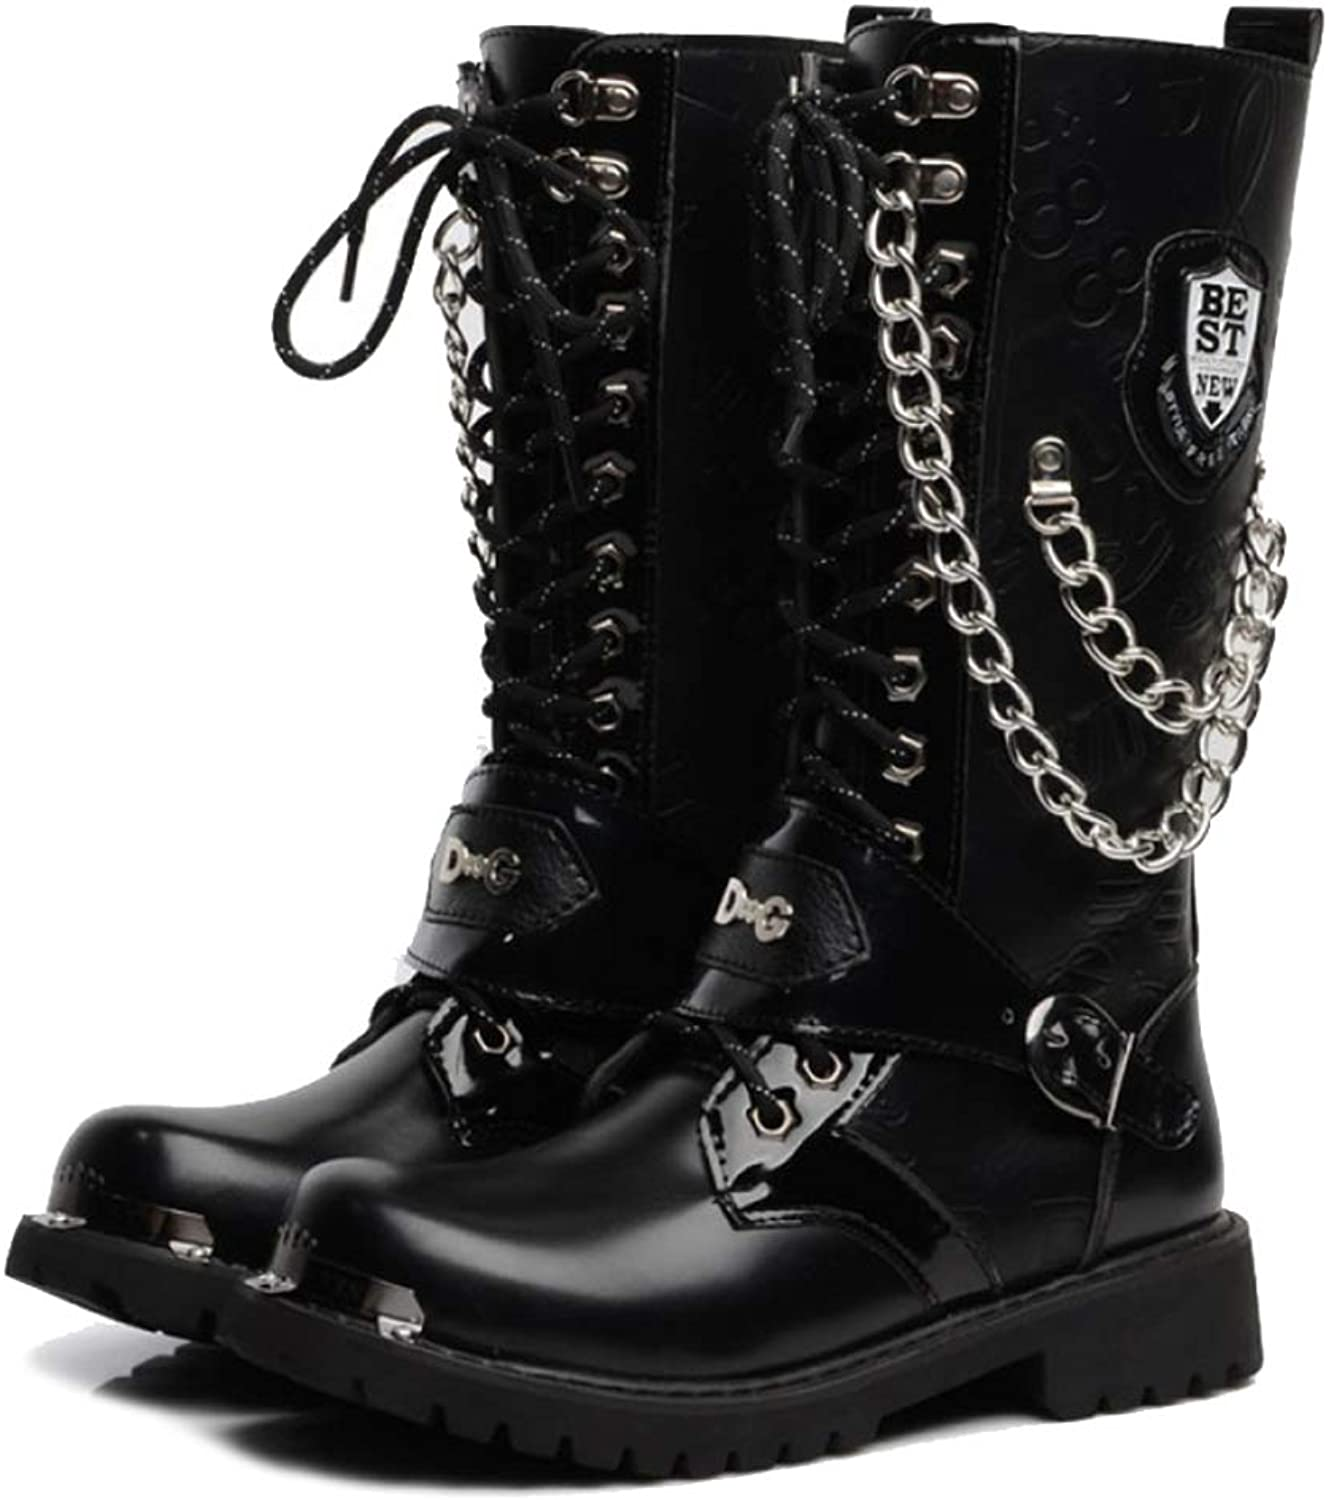 YYIN Boots Men High Top Martin Boots Chain Lace Up Army Military Desert Combat Boot Security Police Tactical shoes Black Special Forces Patrol Boots Work Safety Boots